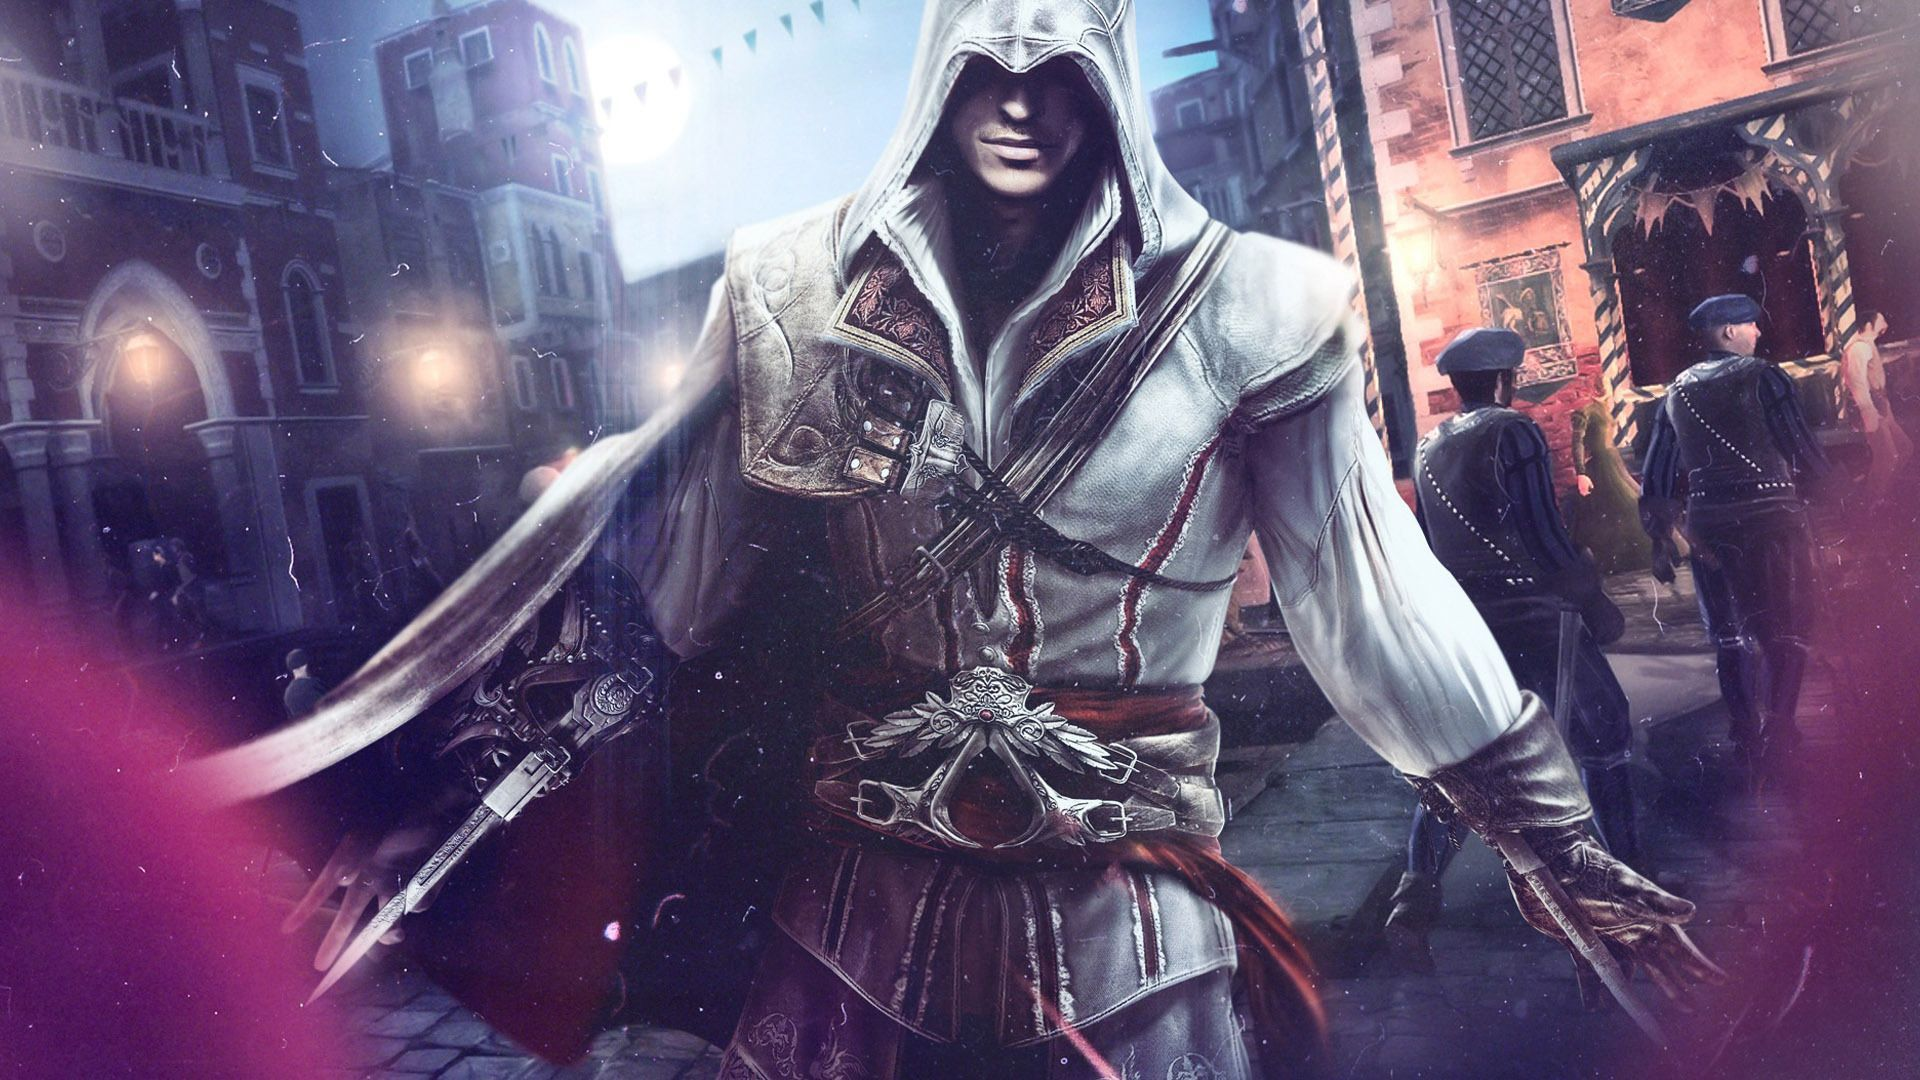 Assassin's Creed 2 Wallpapers - Top Free Assassin's Creed 2 Backgrounds - WallpaperAccess